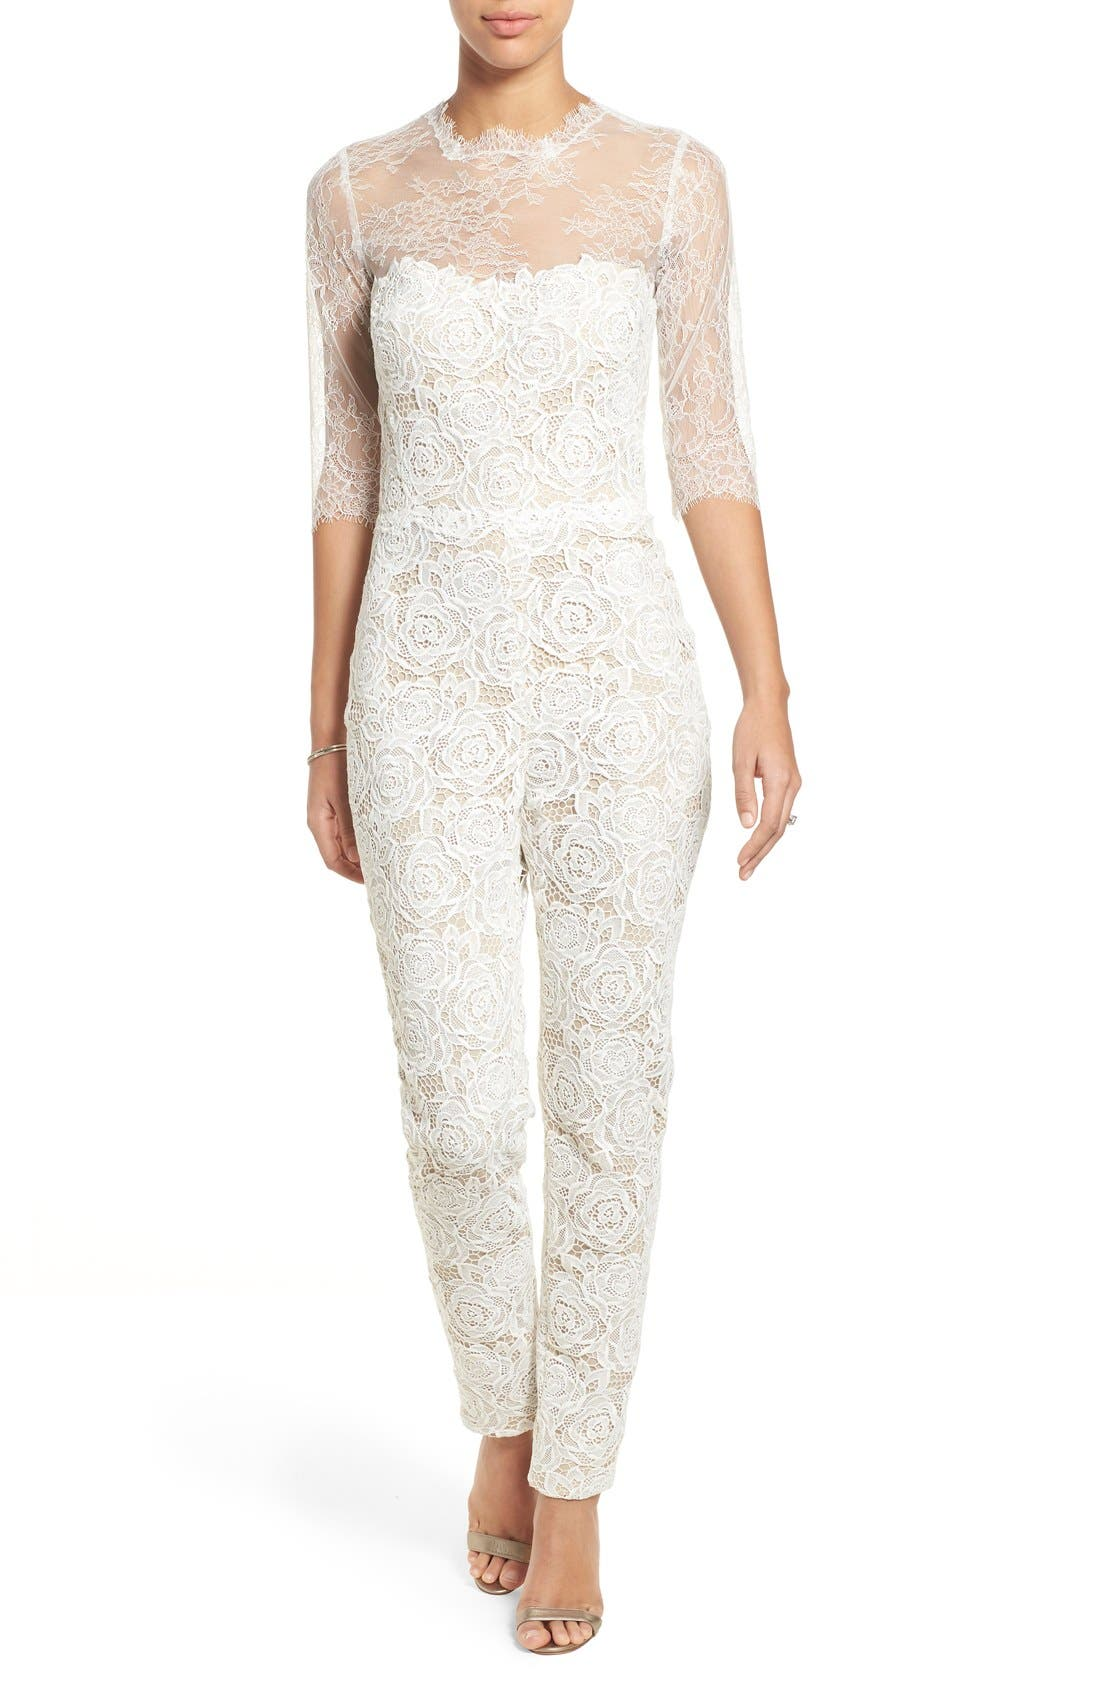 Monique Lhuillier Ready to Wed Guipure Lace Jumpsuit,                             Main thumbnail 1, color,                             Silk White/ Nude